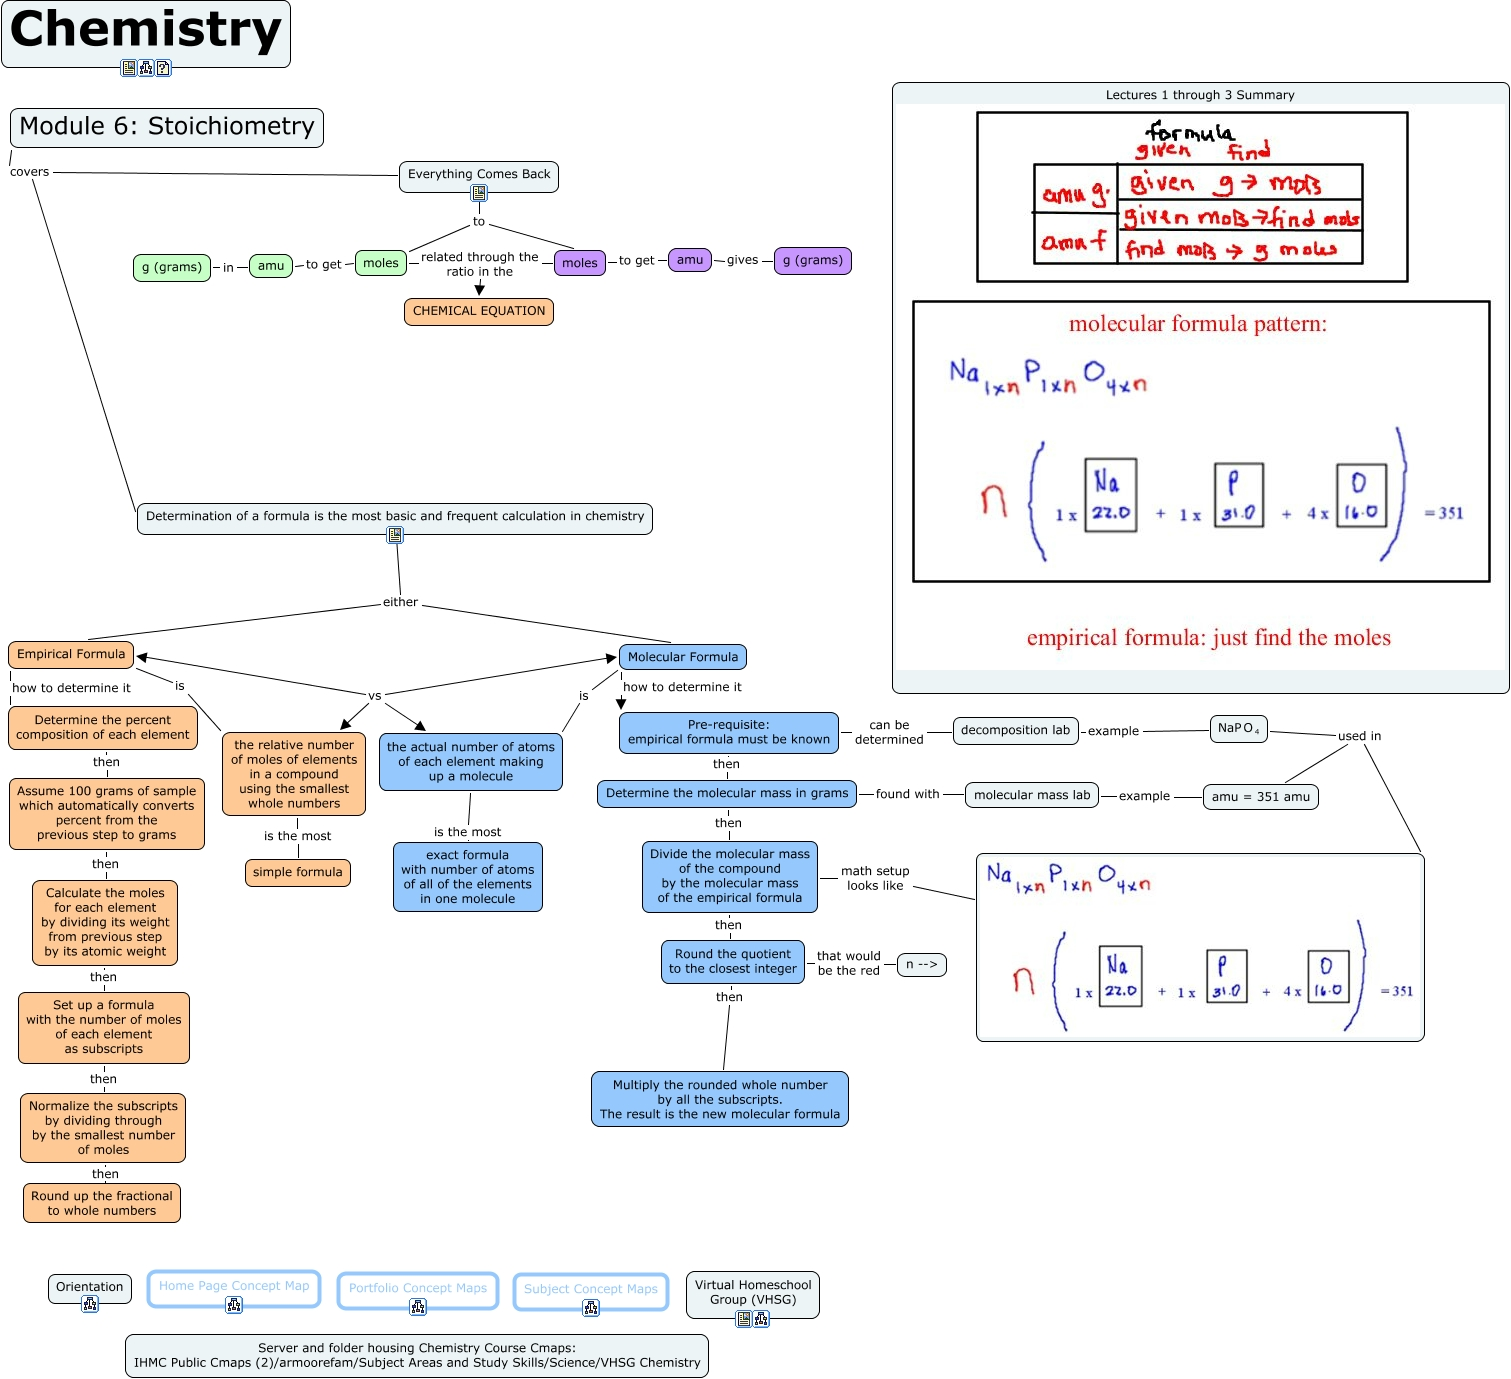 Apologia ed 1 module 6 concept map what is covered in module 6 each element by dividing its weight from previous step by its atomic weight then set up a formula with the number of moles of each element as subscripts urtaz Images